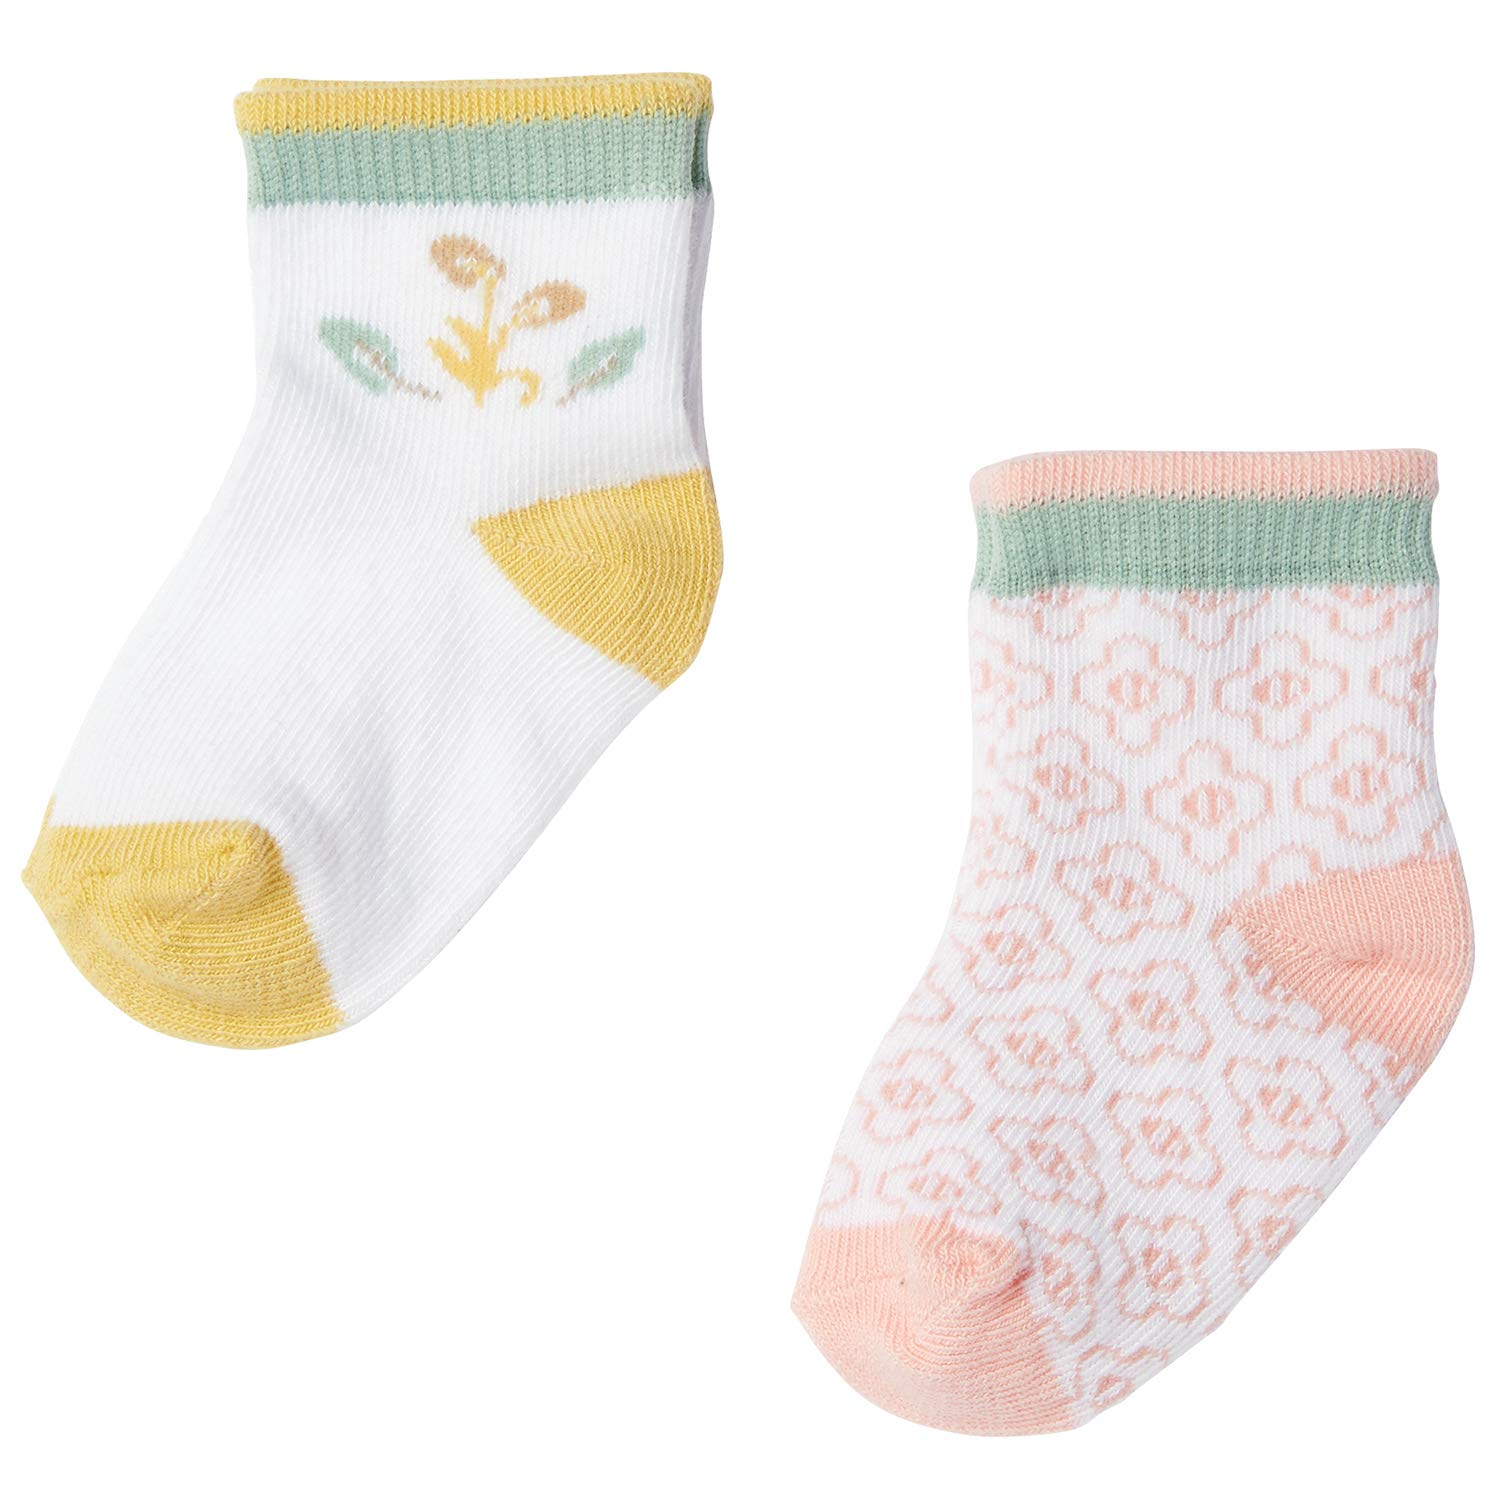 C.R. Gibson Multicolor Floral Max 43% OFF store Baby Dwell Socks St by